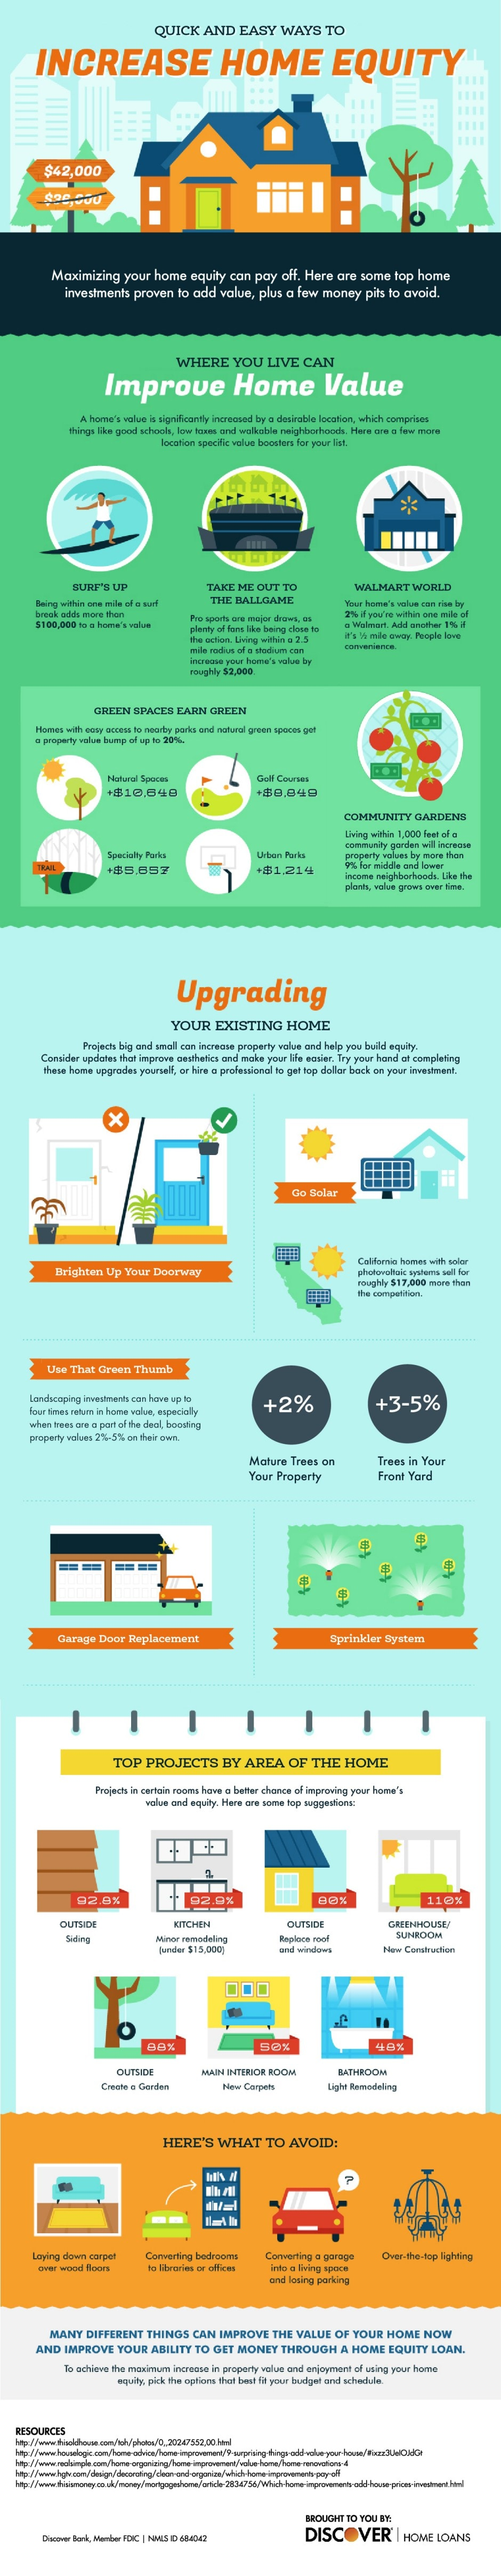 Infographic outlining different ways to increase your home equity